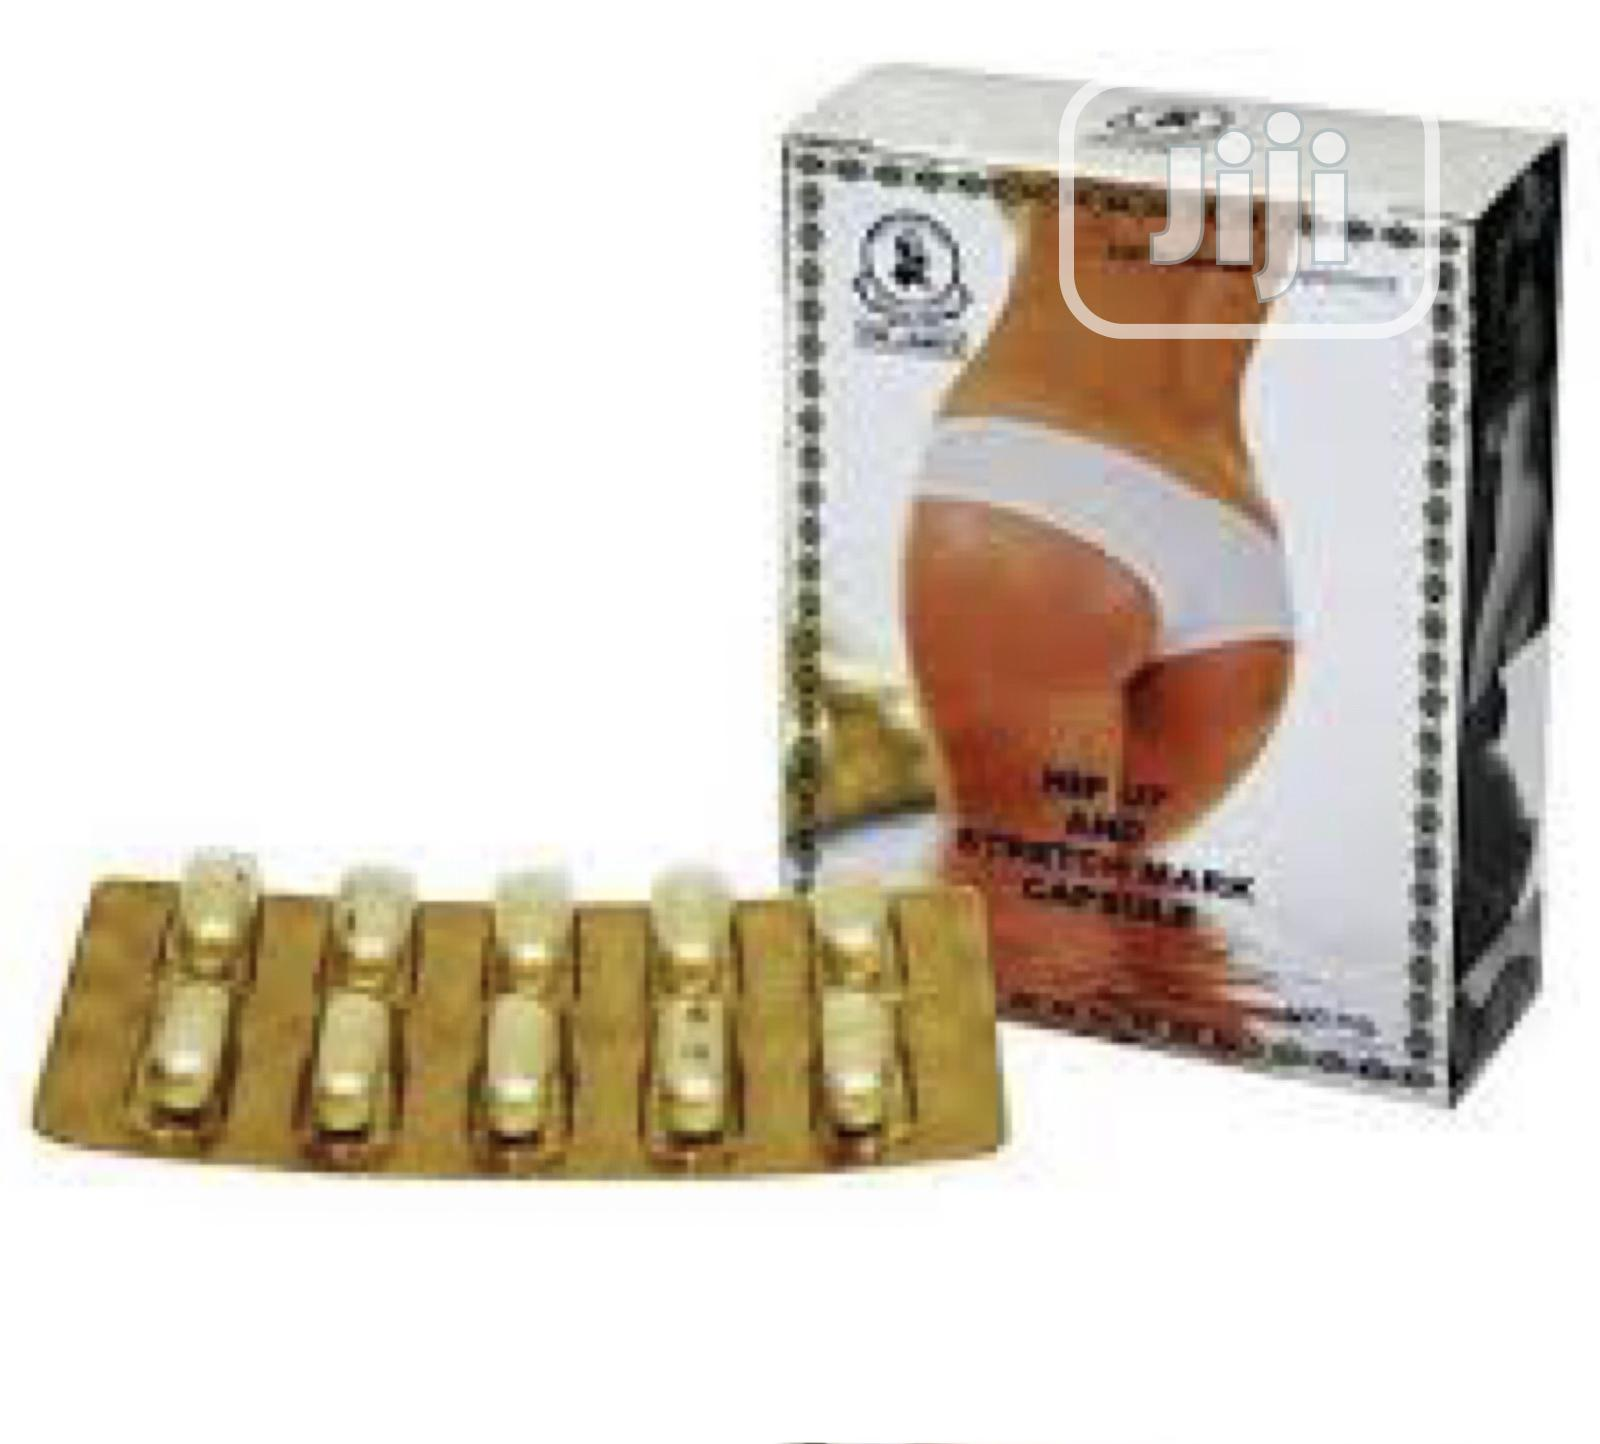 Dr James Hip-Up and Stretch Mark Capsule-30 Capsules